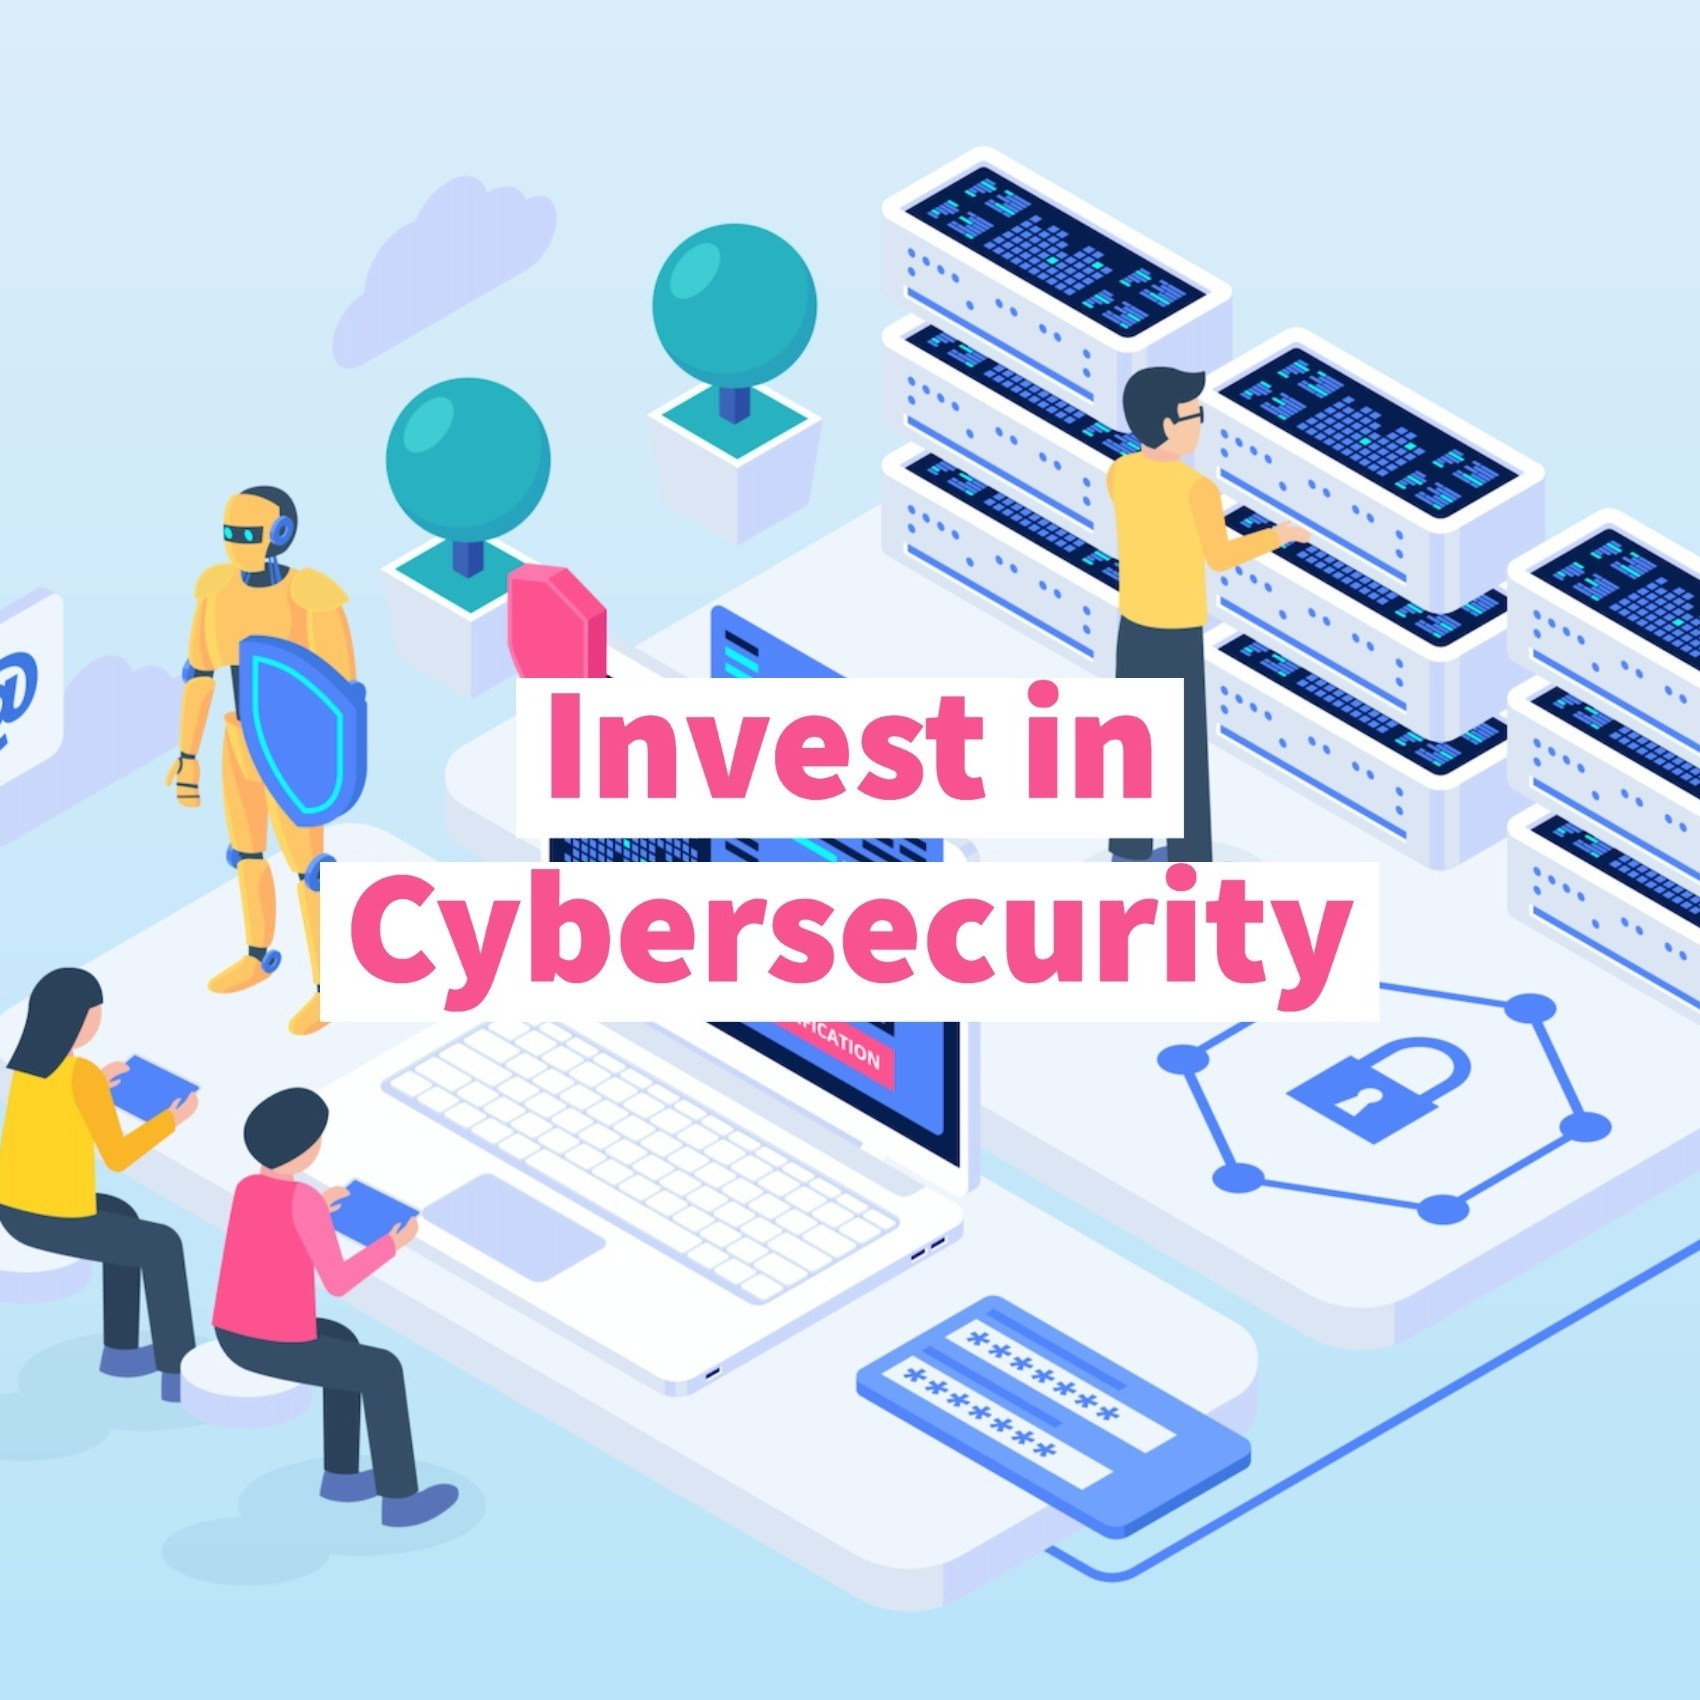 Invest in Cybersecurity